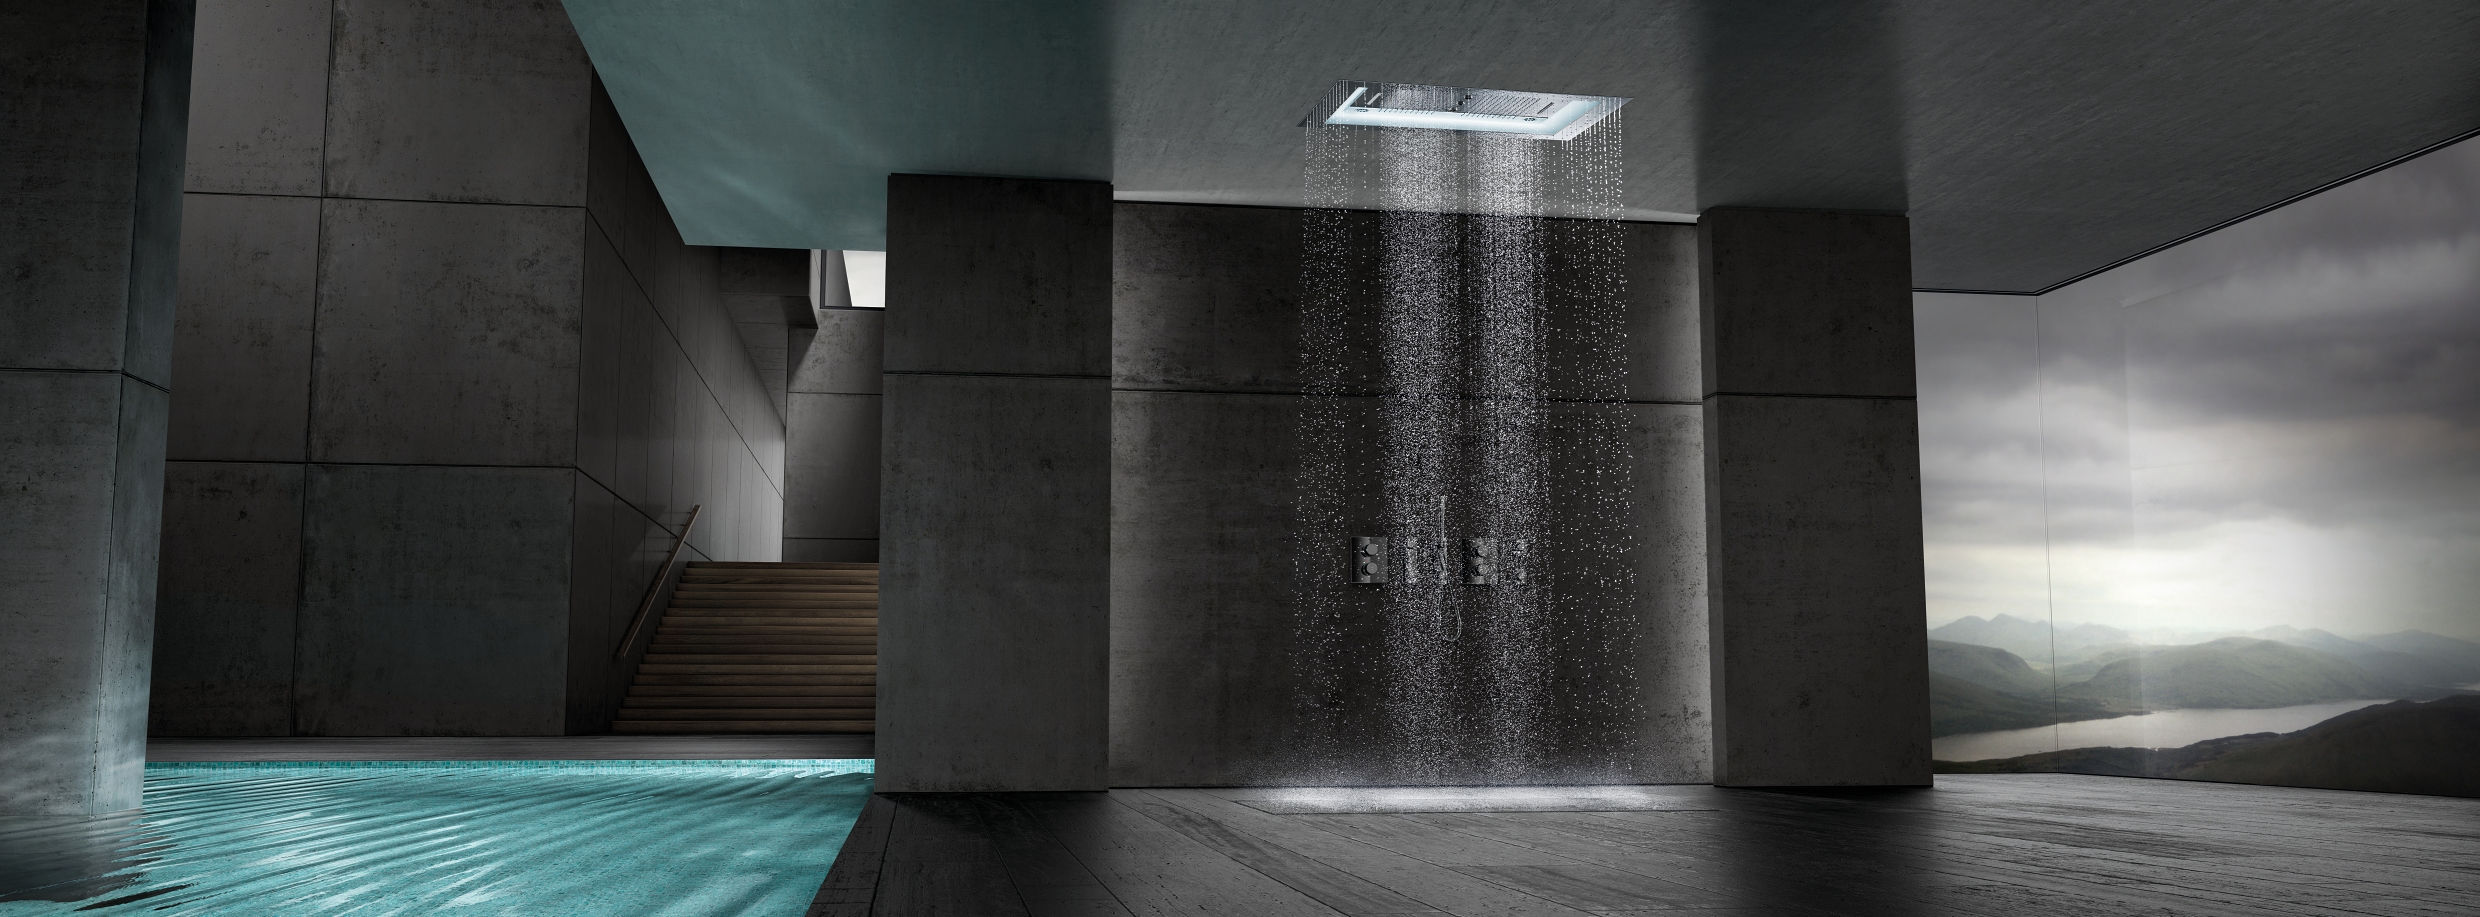 ... Recessed Ceiling Shower Head / Rectangular / Rain / With Built In Light  AQUASYMPHONY RAINSHOWER ...